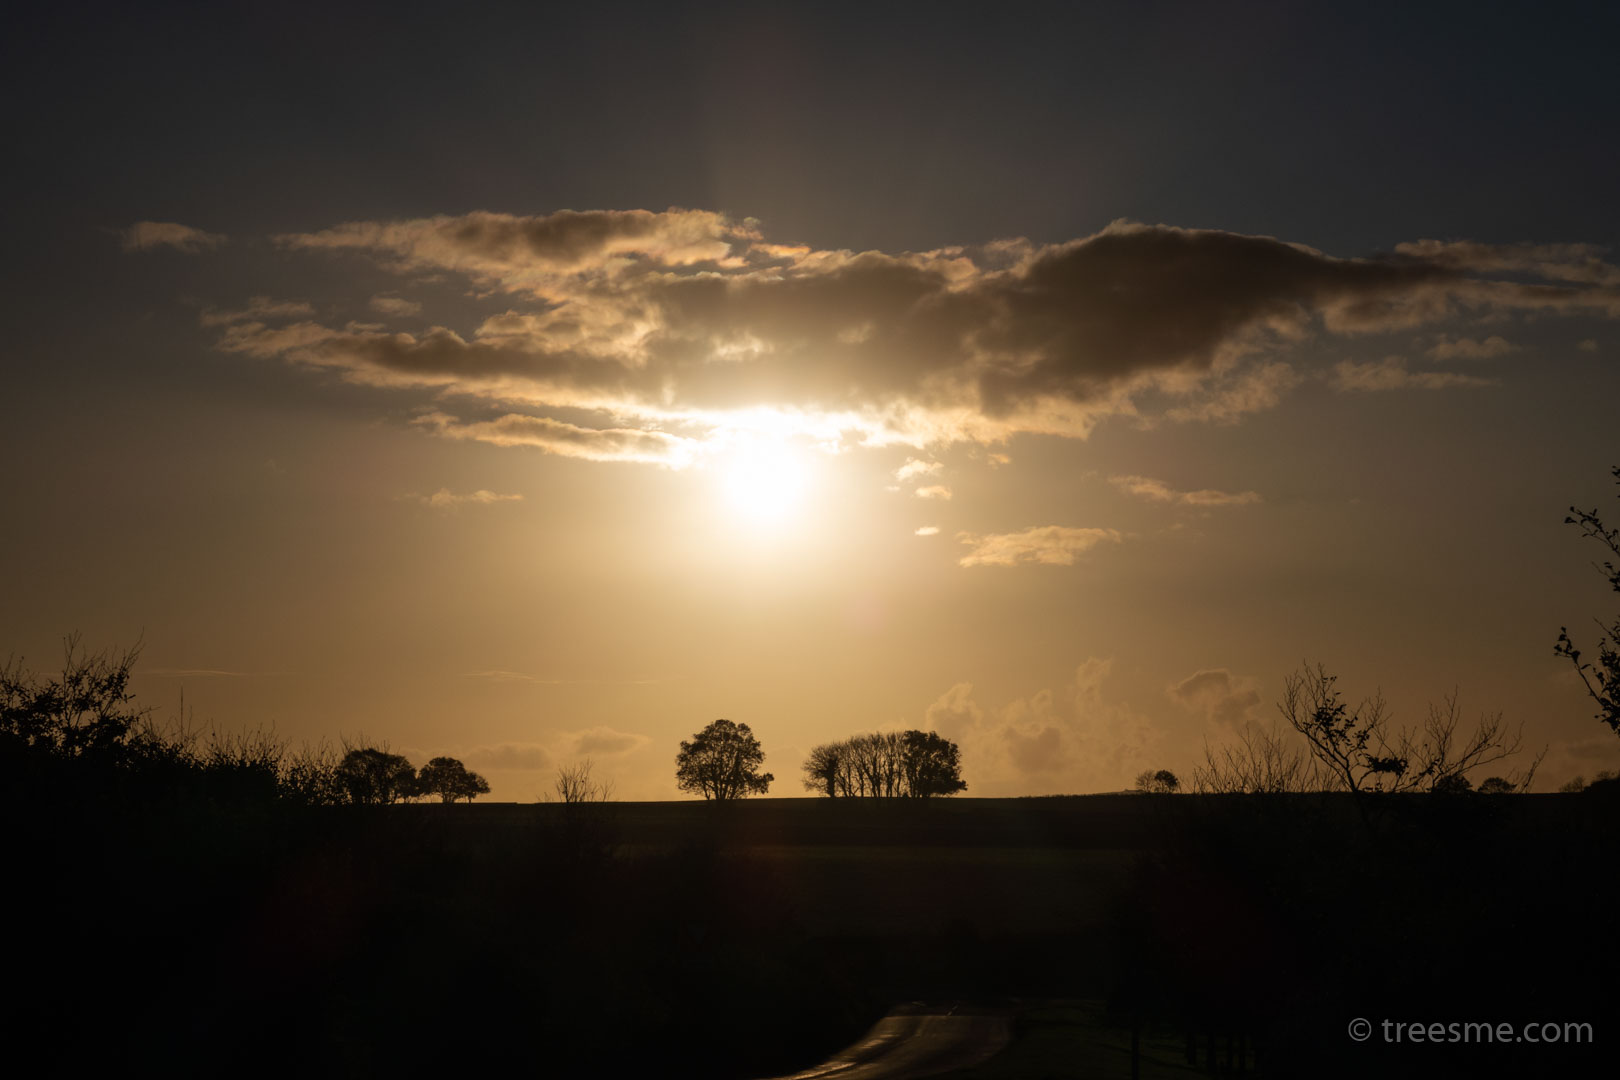 Autumn (October) – The Evening Sun and Light Cloud, Looking Towards Bodmin Moor